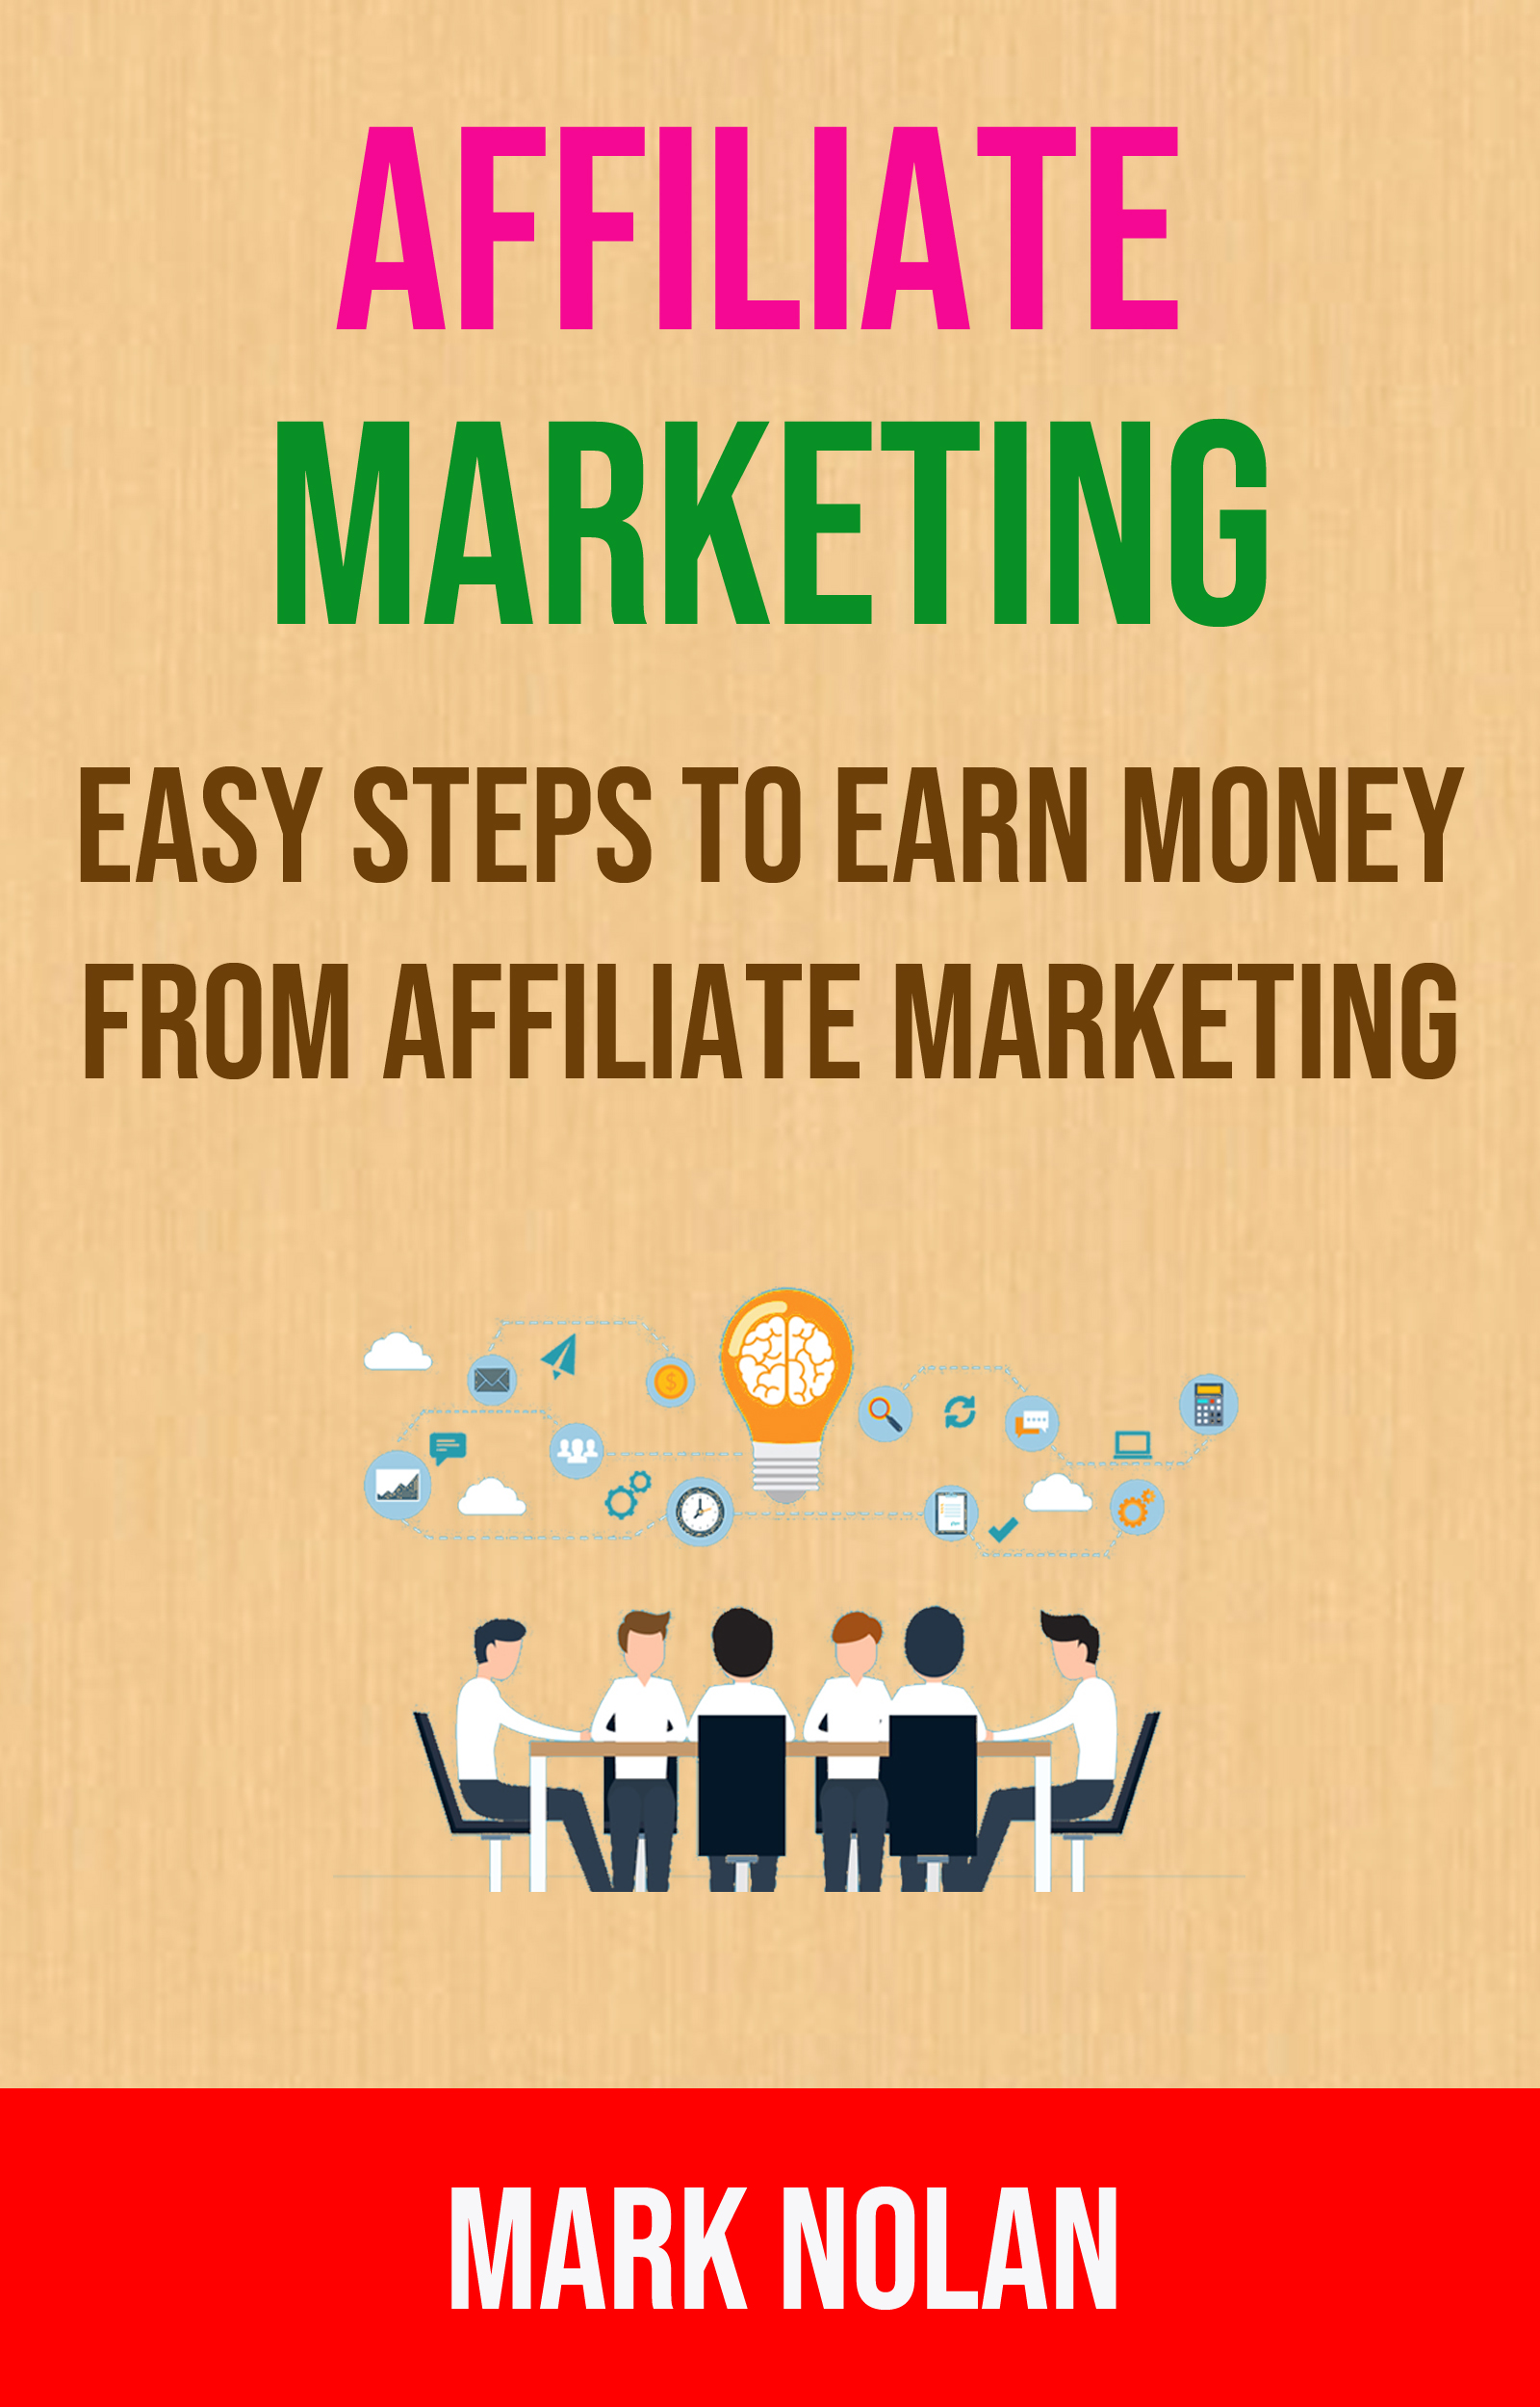 Affiliate marketing: easy steps to earn money from affiliate marketing